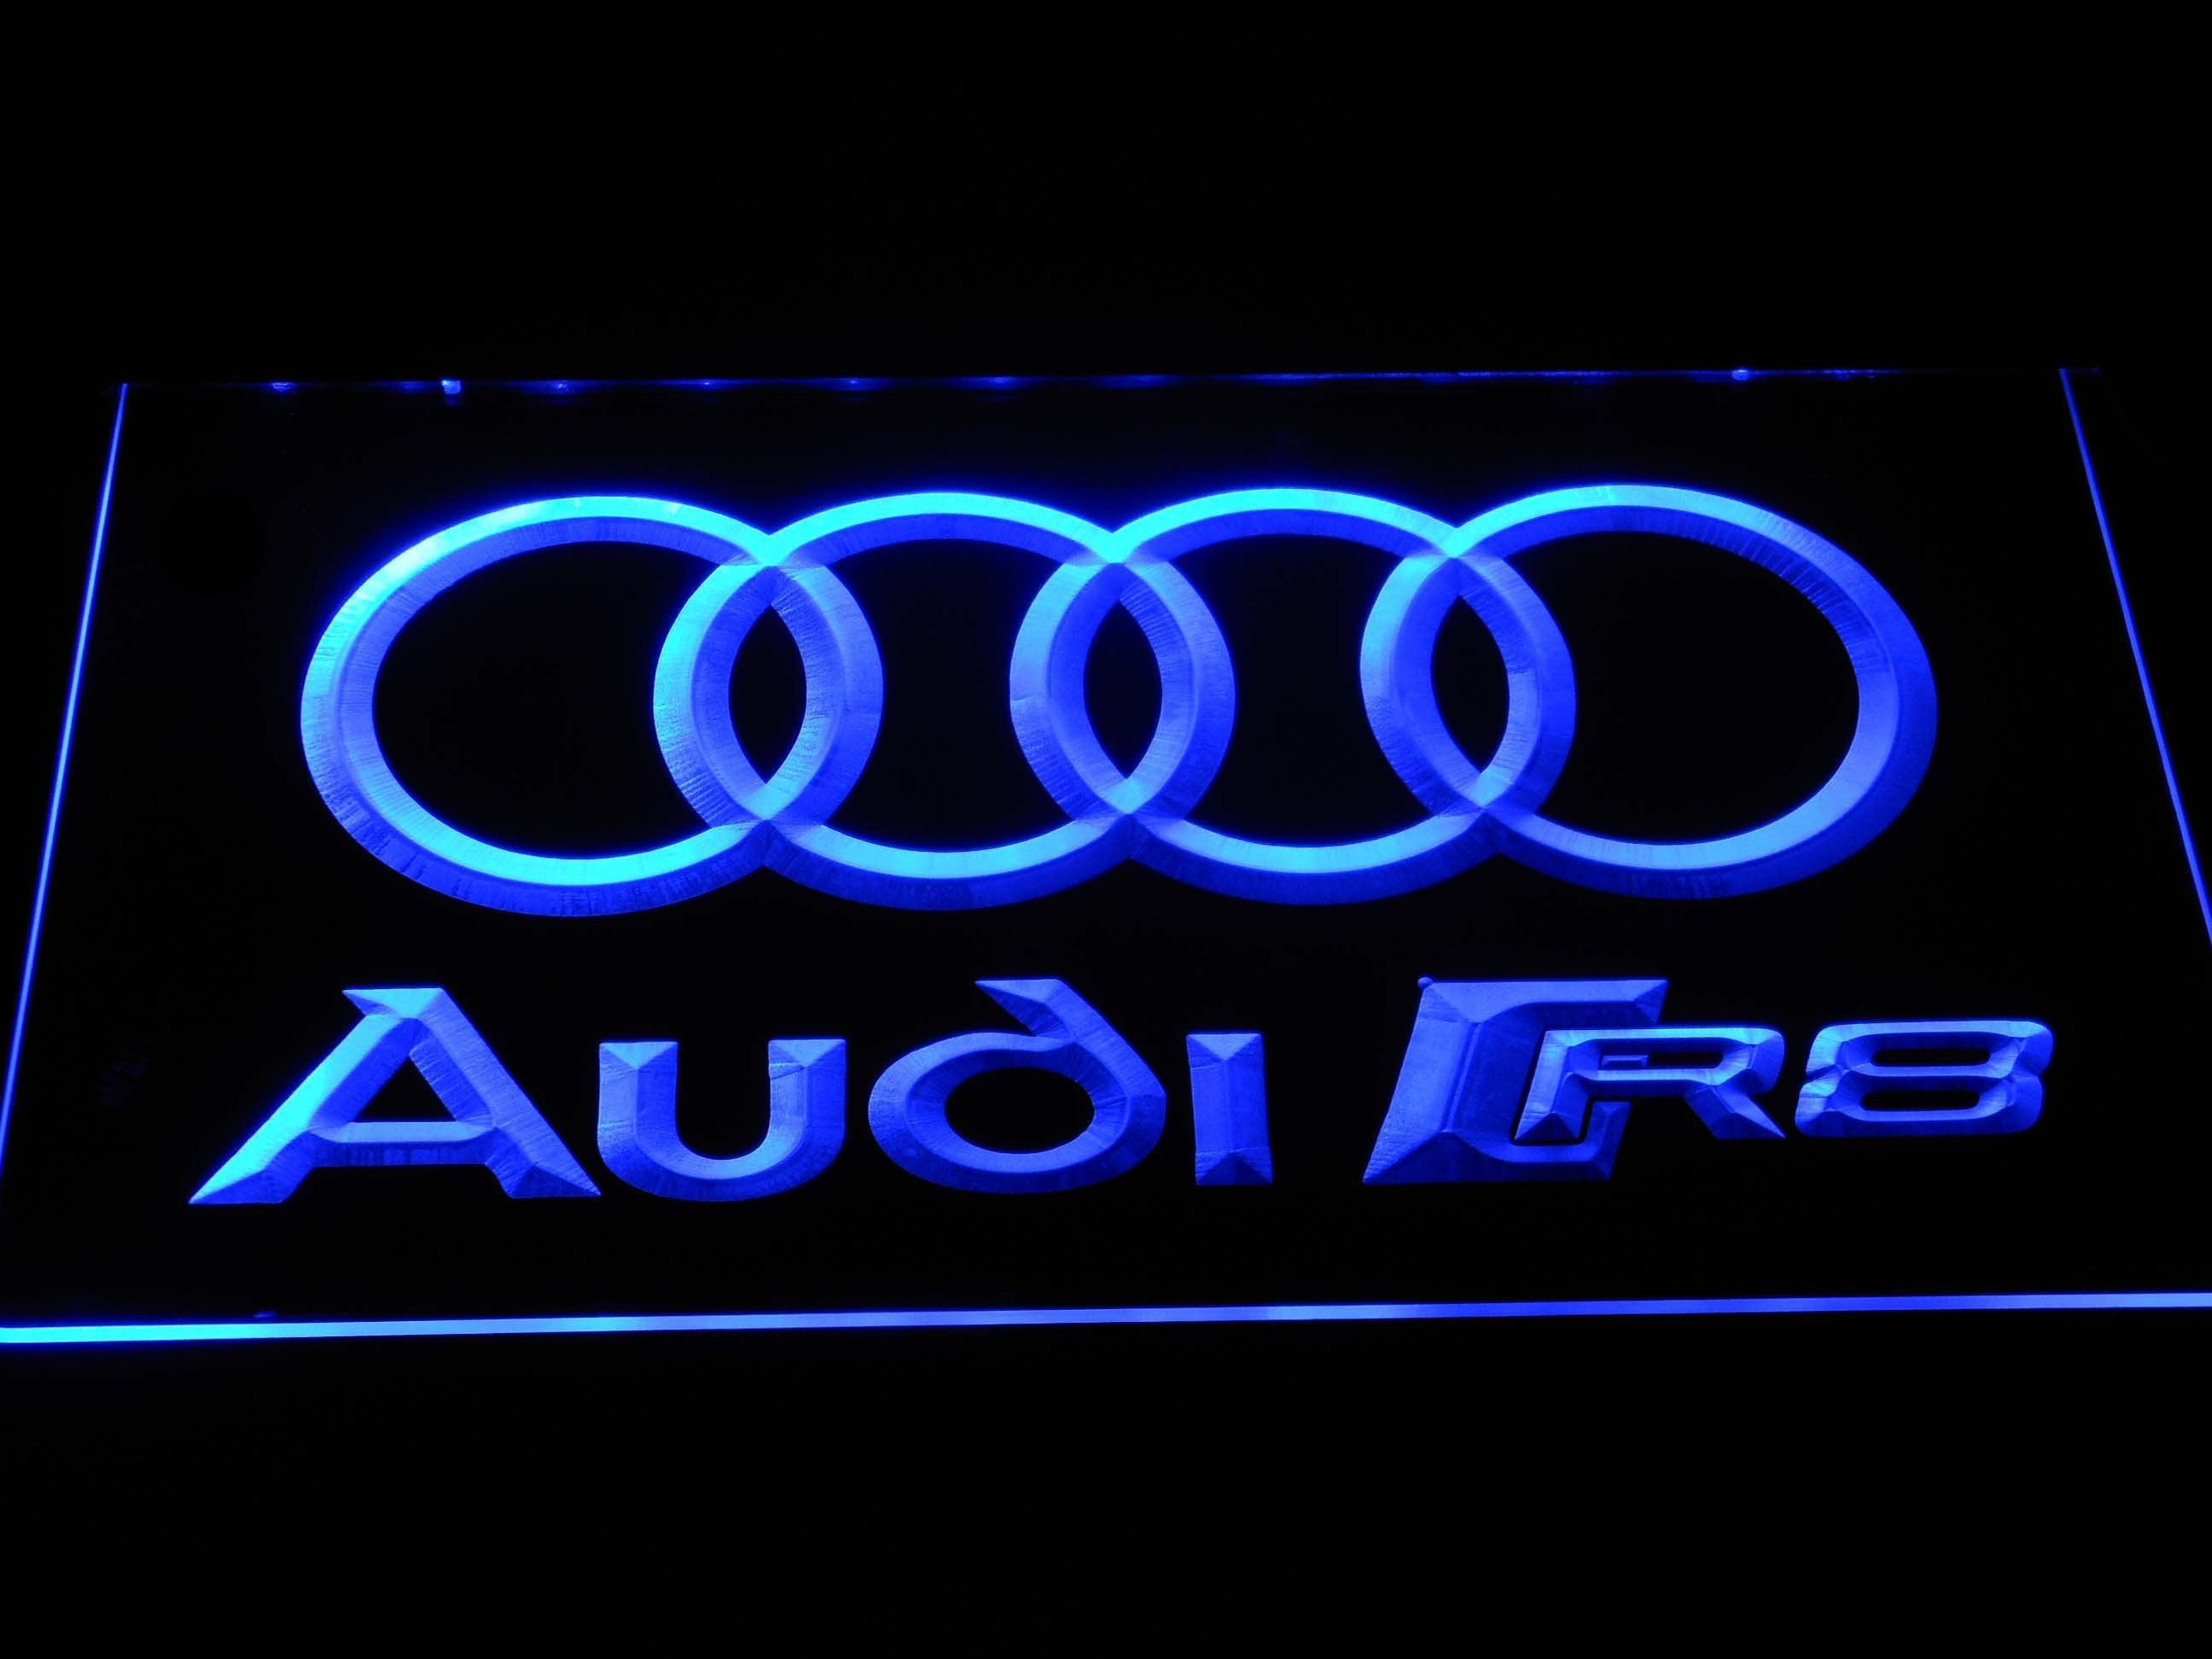 audi r8 logo led neon sign safespecial. Black Bedroom Furniture Sets. Home Design Ideas